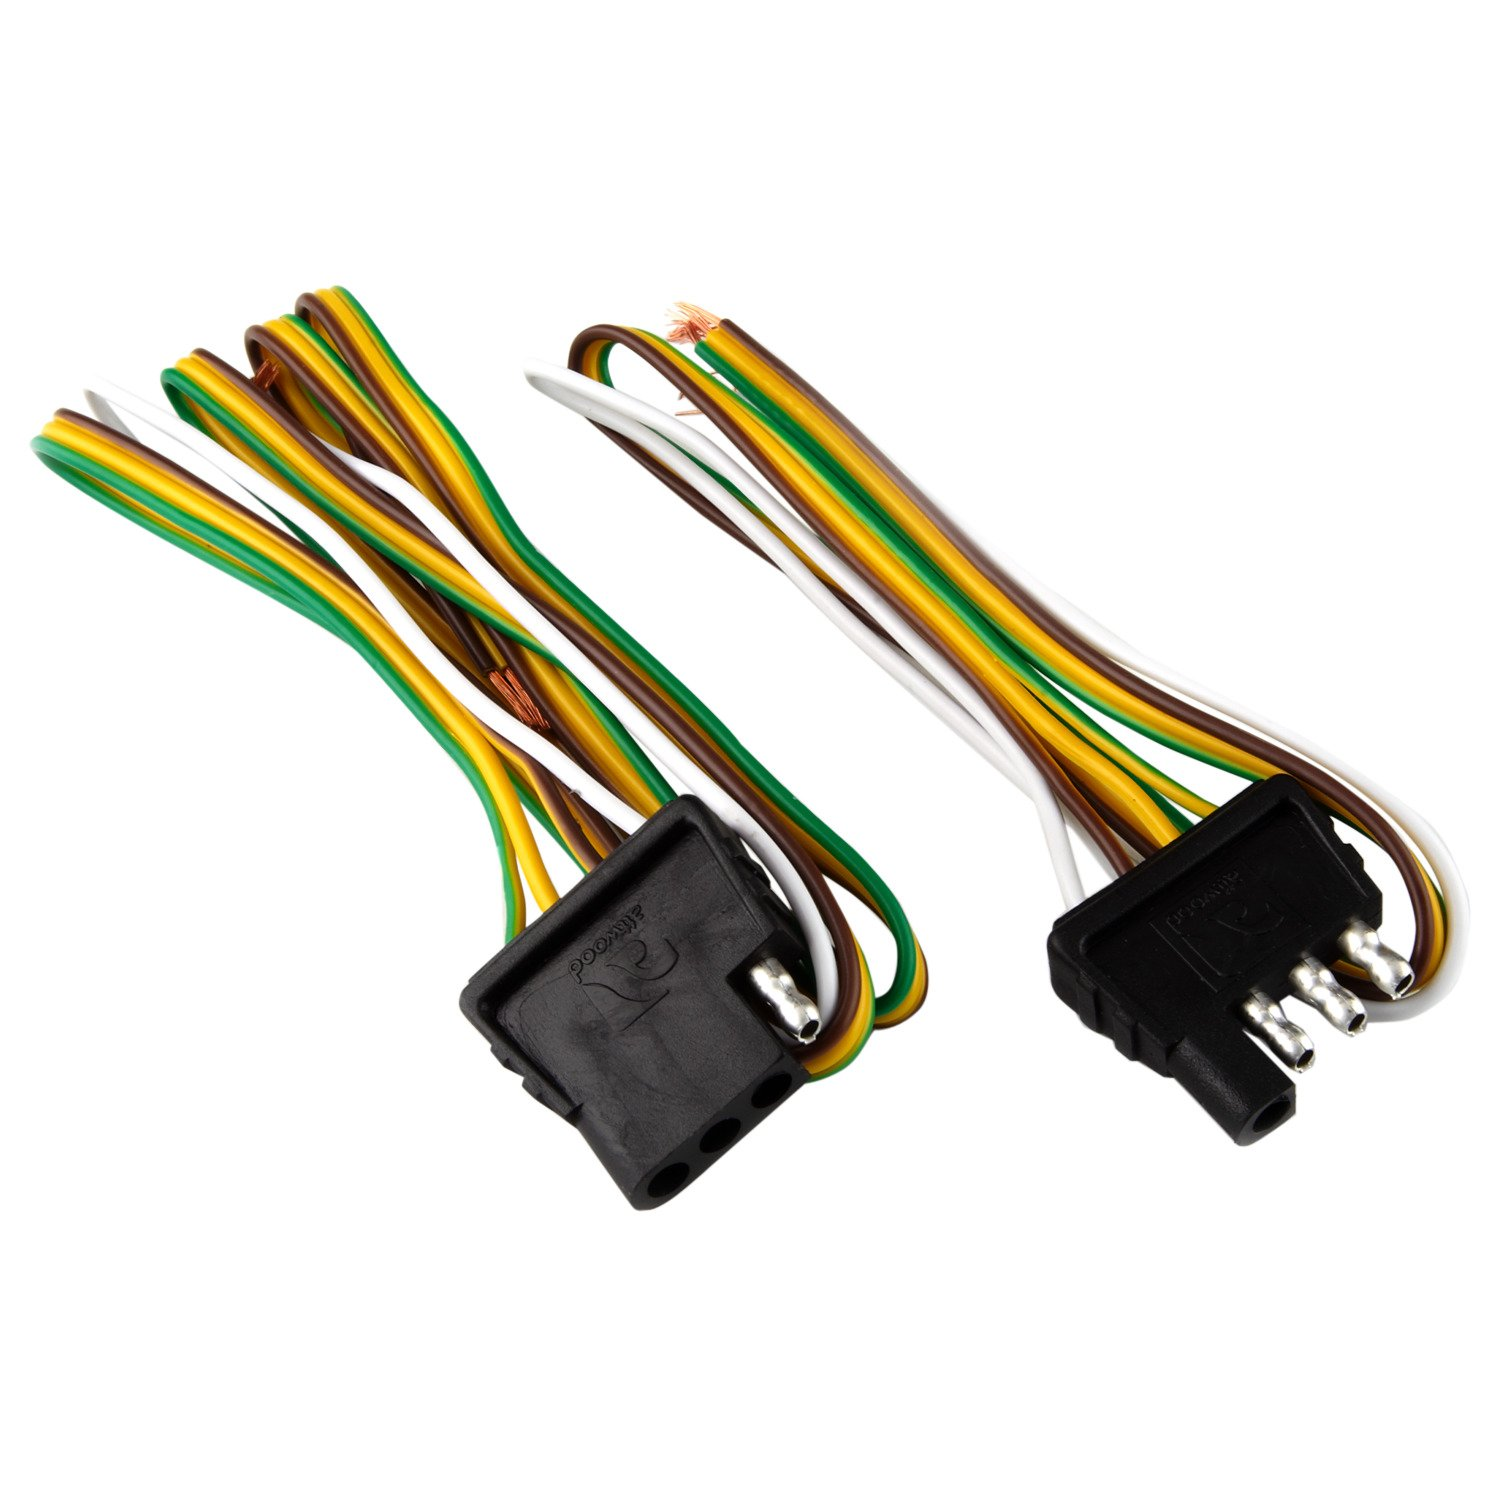 attwood 4 way flat wiring harness kit for vehicles and trailers audi tt wiring harness trailer wiring harness trailers [ 1500 x 1500 Pixel ]